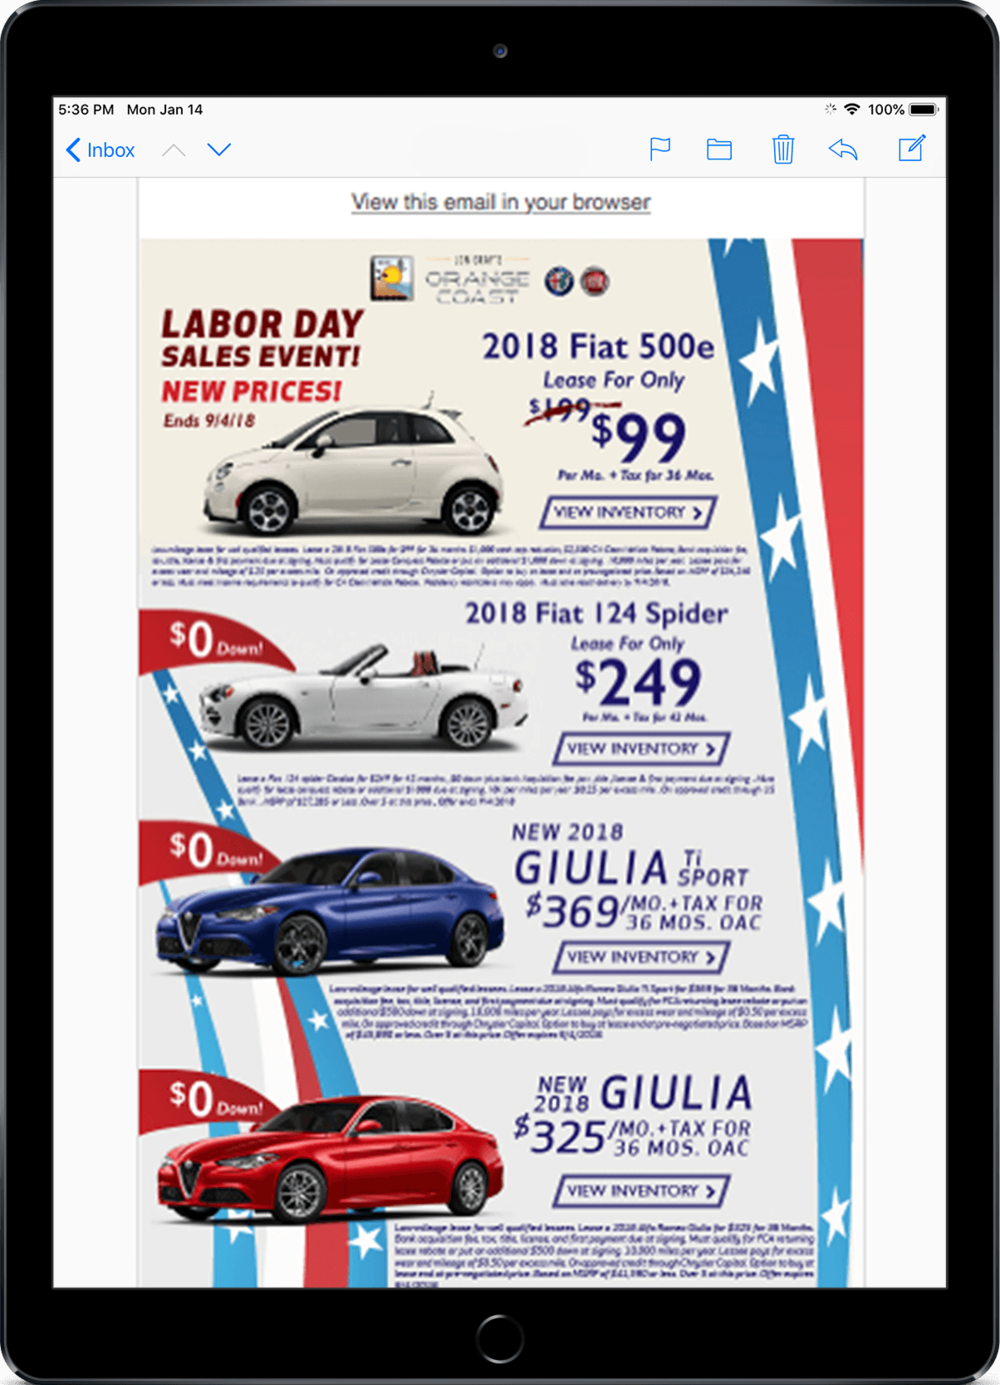 OC Fiat labor day blast IPAD.png